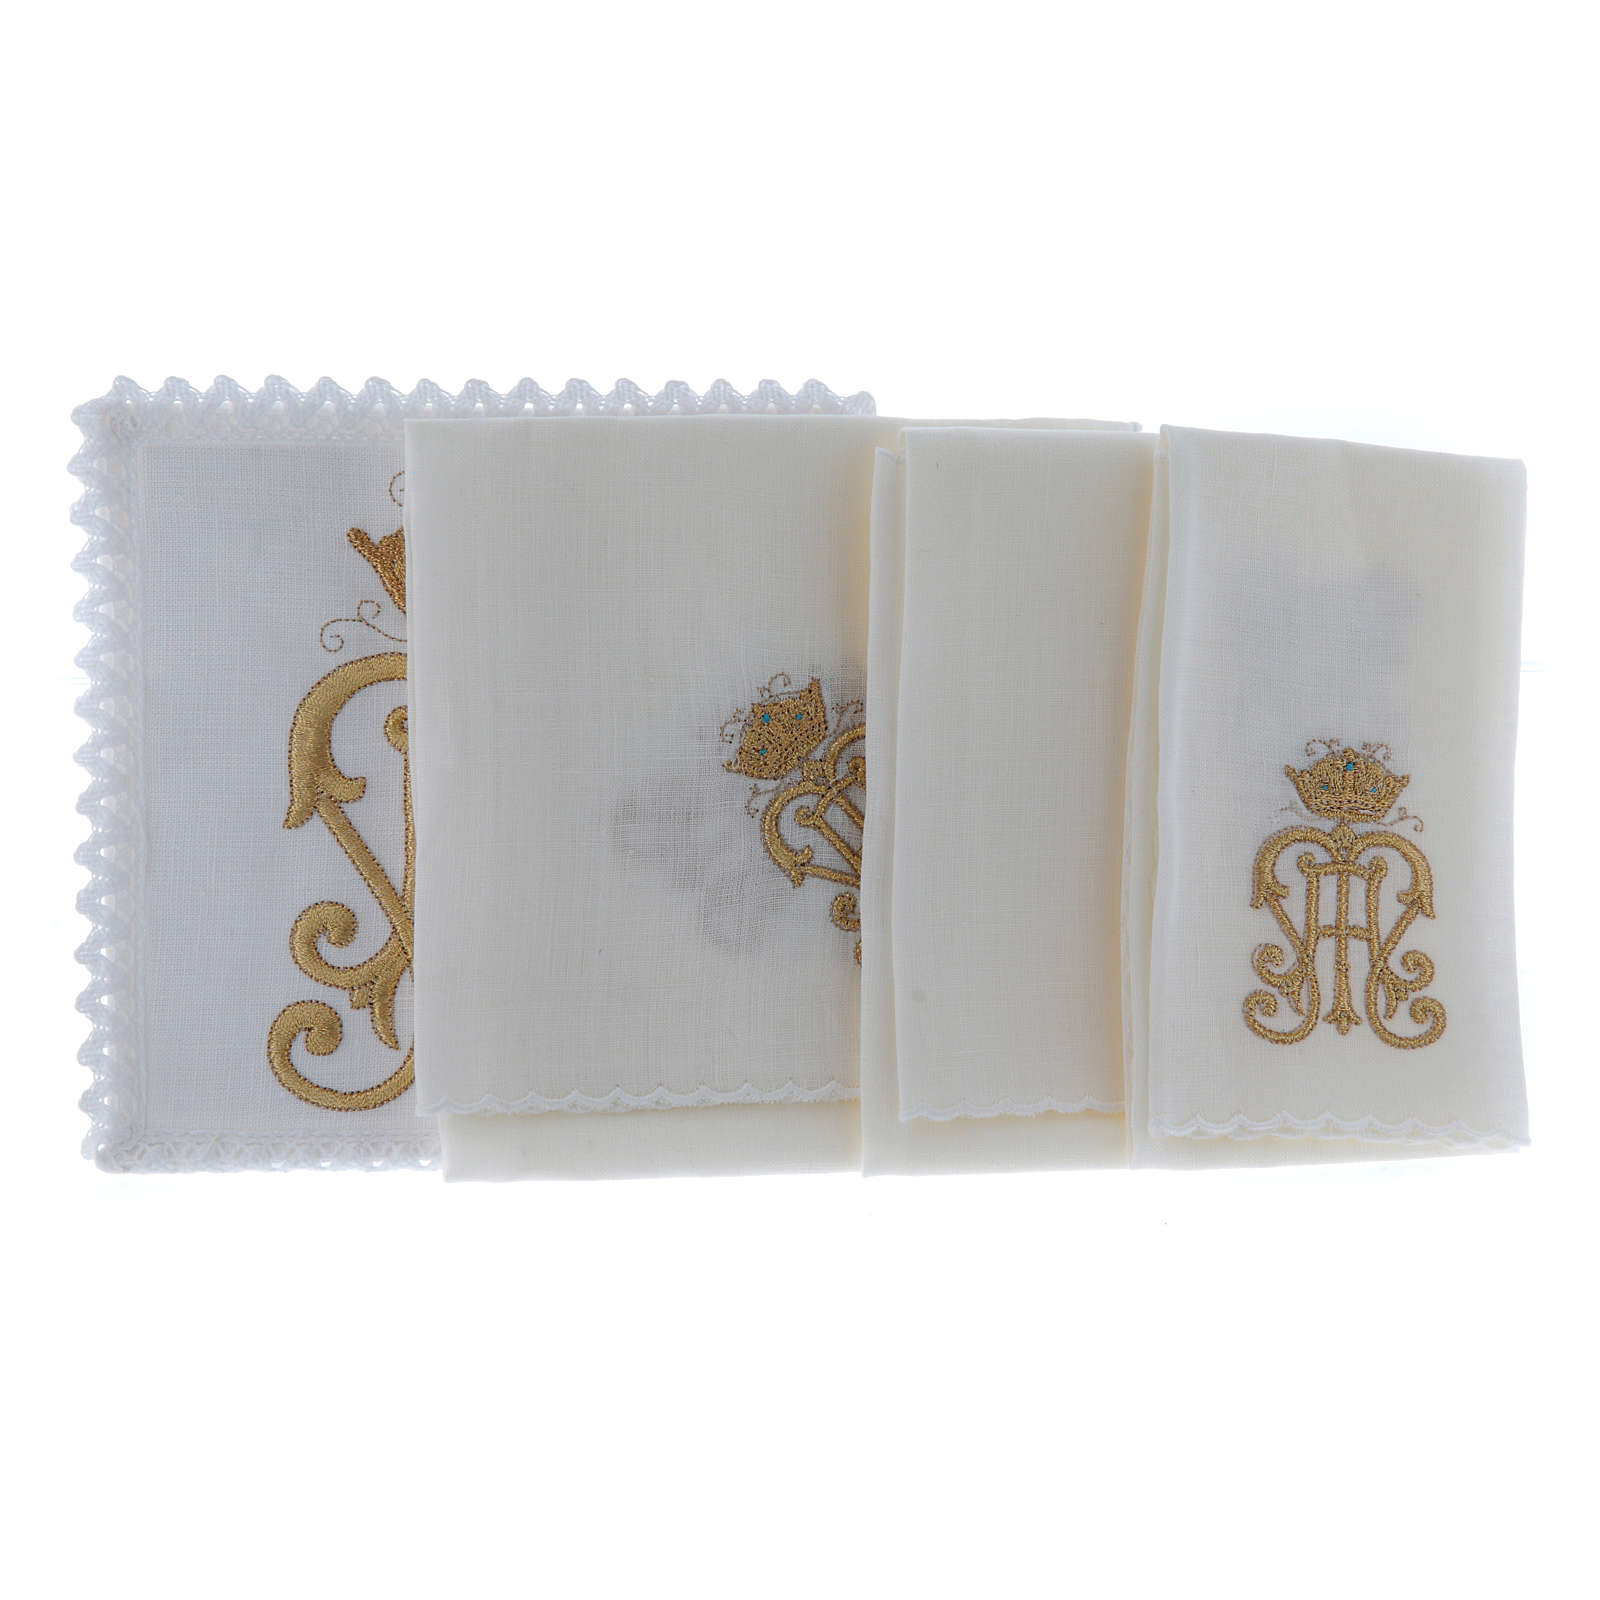 Altar cloth set gold JHS symbol with crown 4